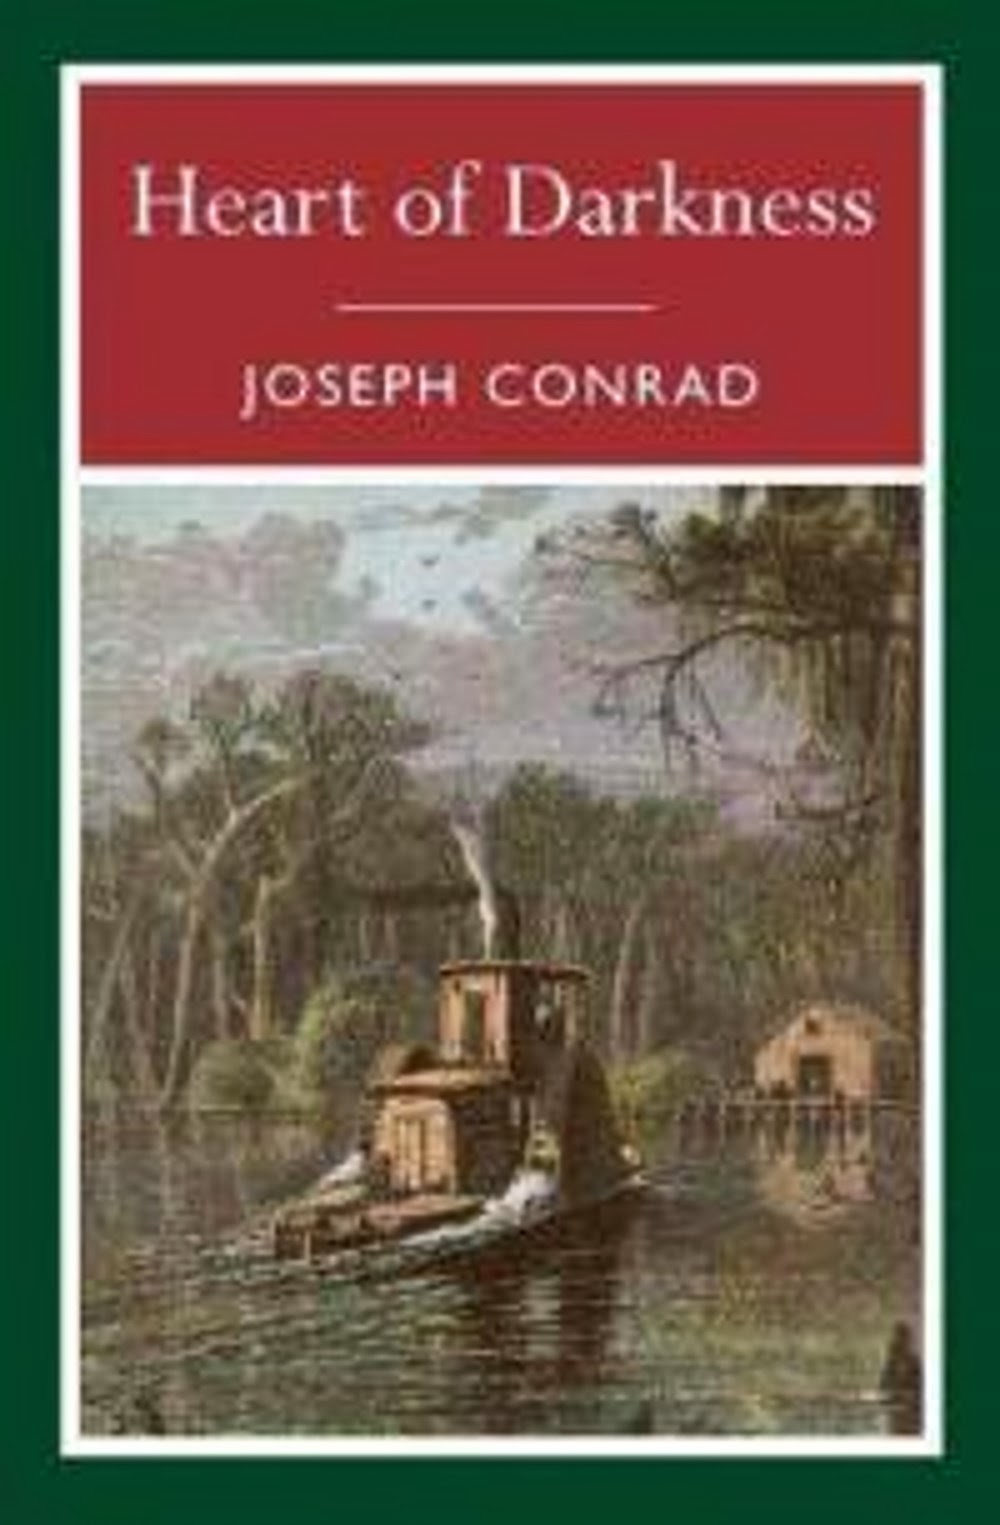 Psychological Analysis Of Joseph Conrad's Heart Of Darkness